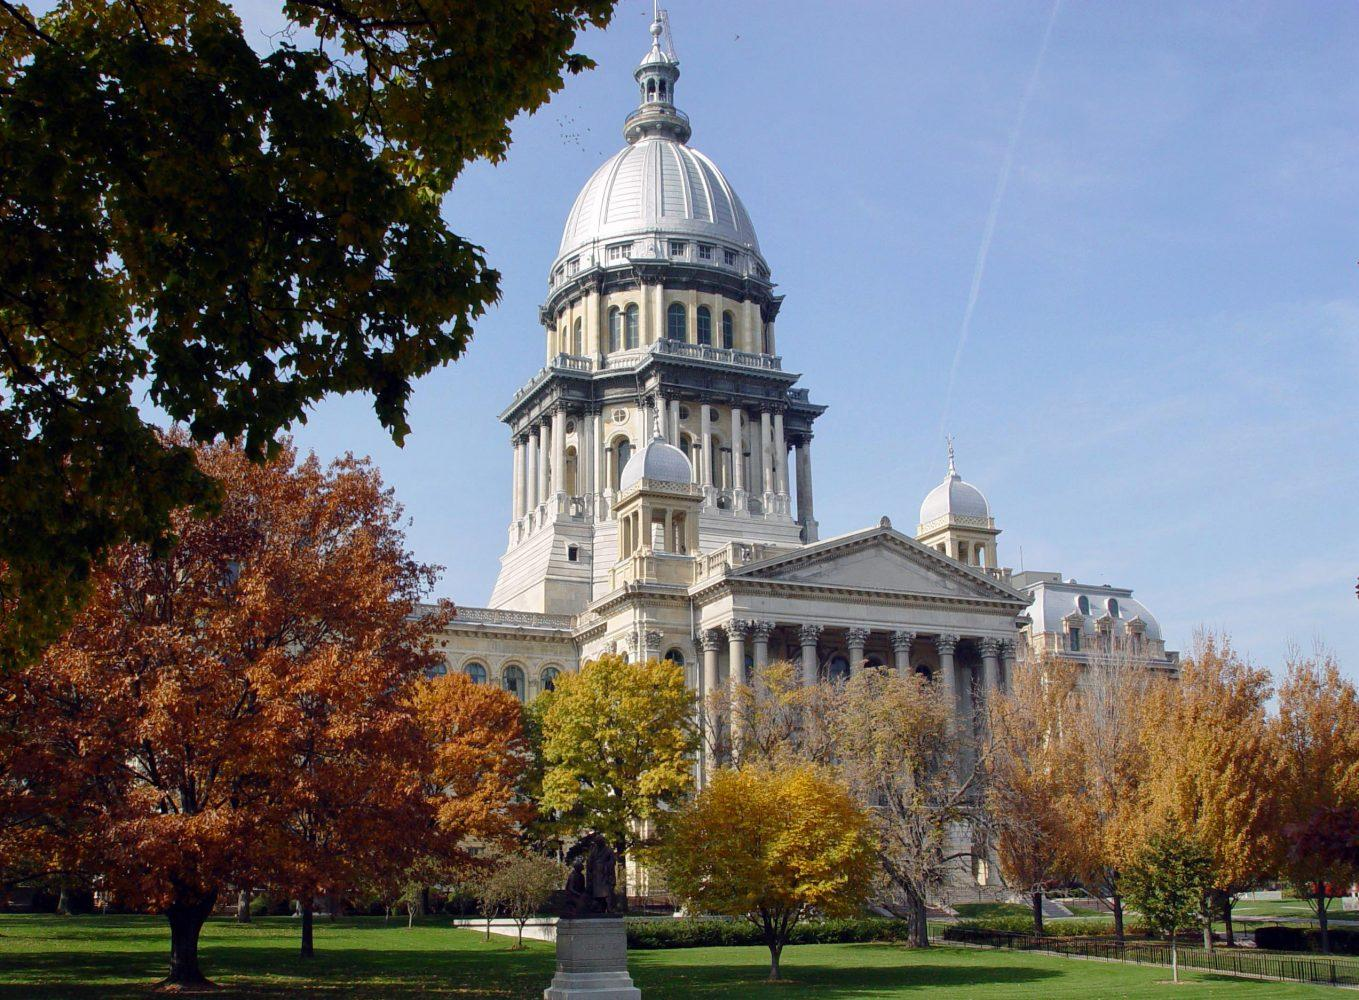 The Illinois capitol building in Springfield.